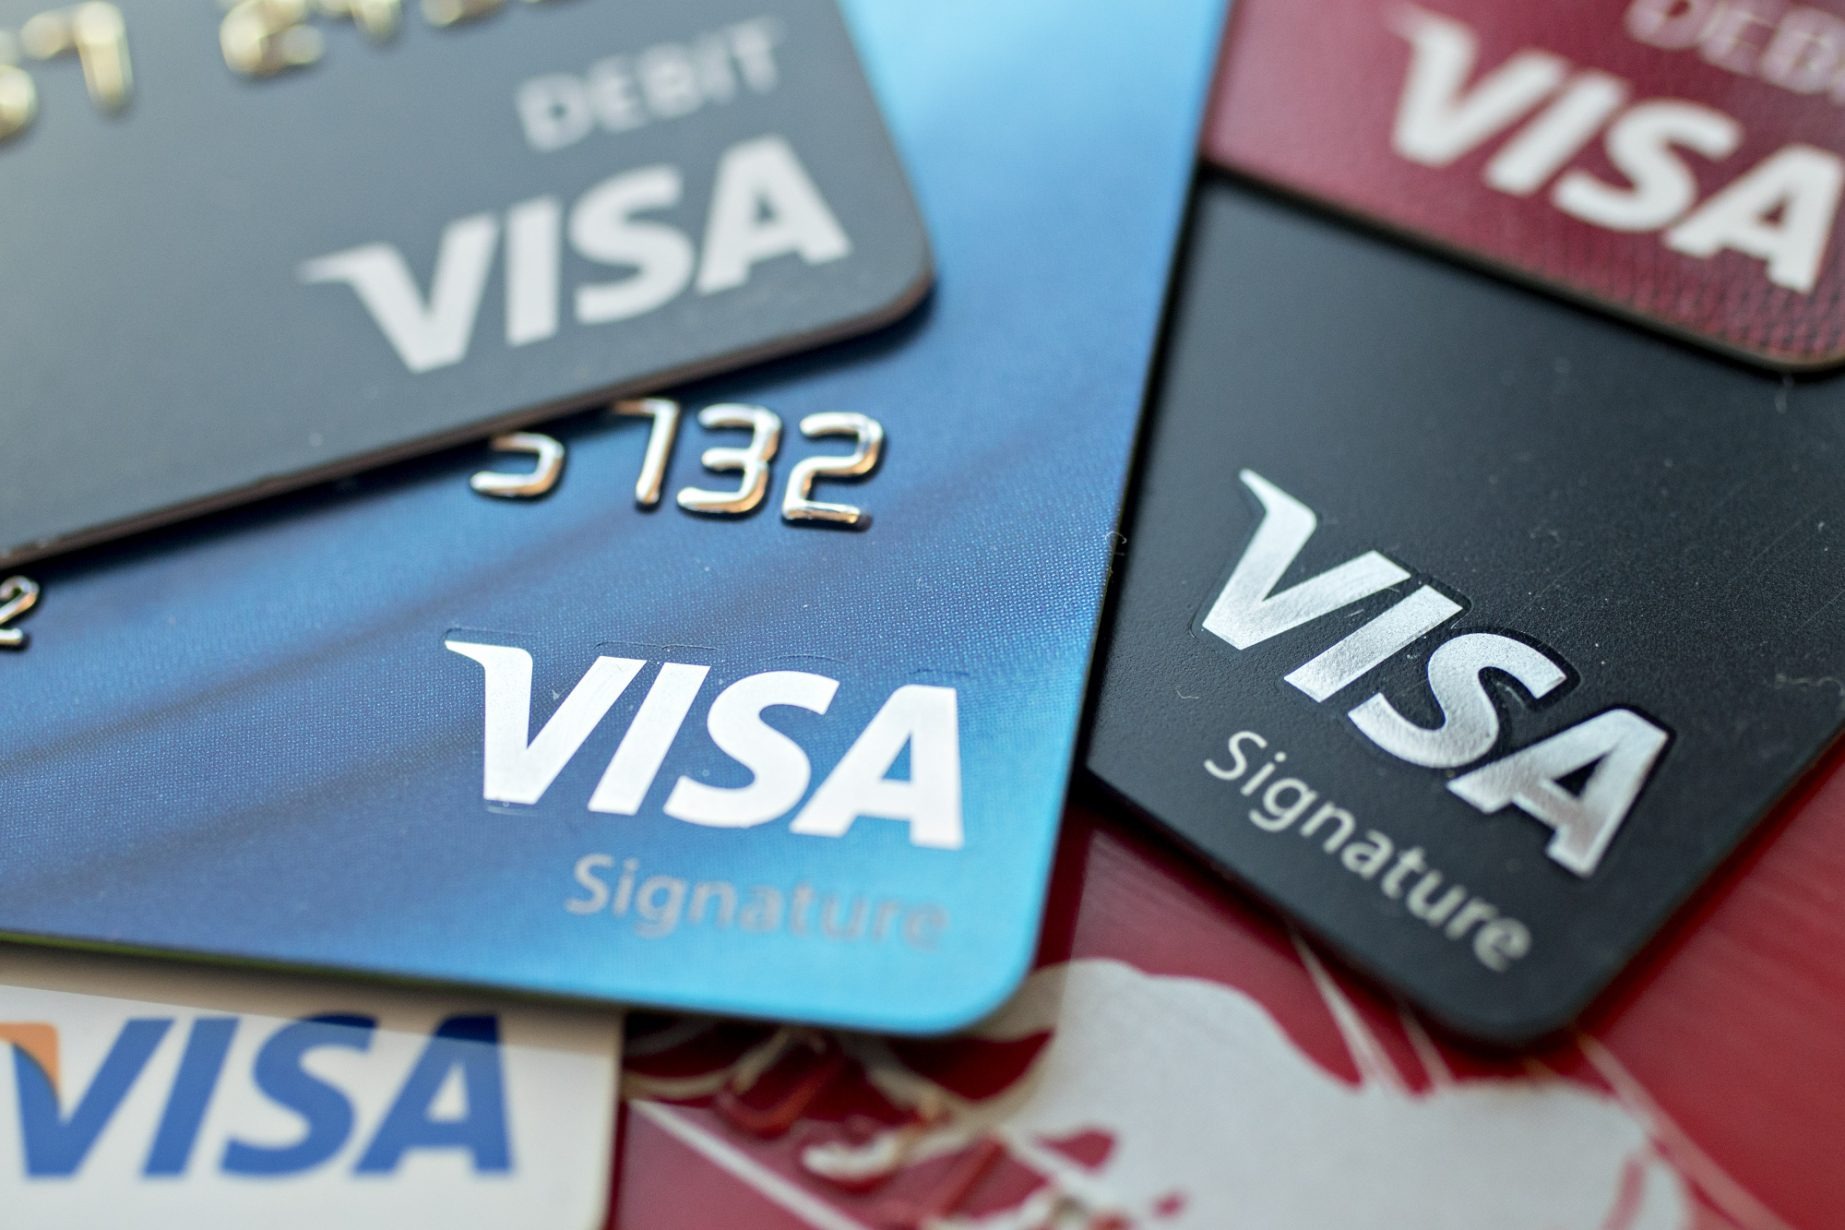 Visa Inc. debit and credit cards are arranged for a photograph in Washington, D.C., U.S., on Friday, Oct. 20, 2017. Visa is expected to announce fourth-quarter earnings figures on October 25. Photographer: Andrew Harrer/Bloomberg